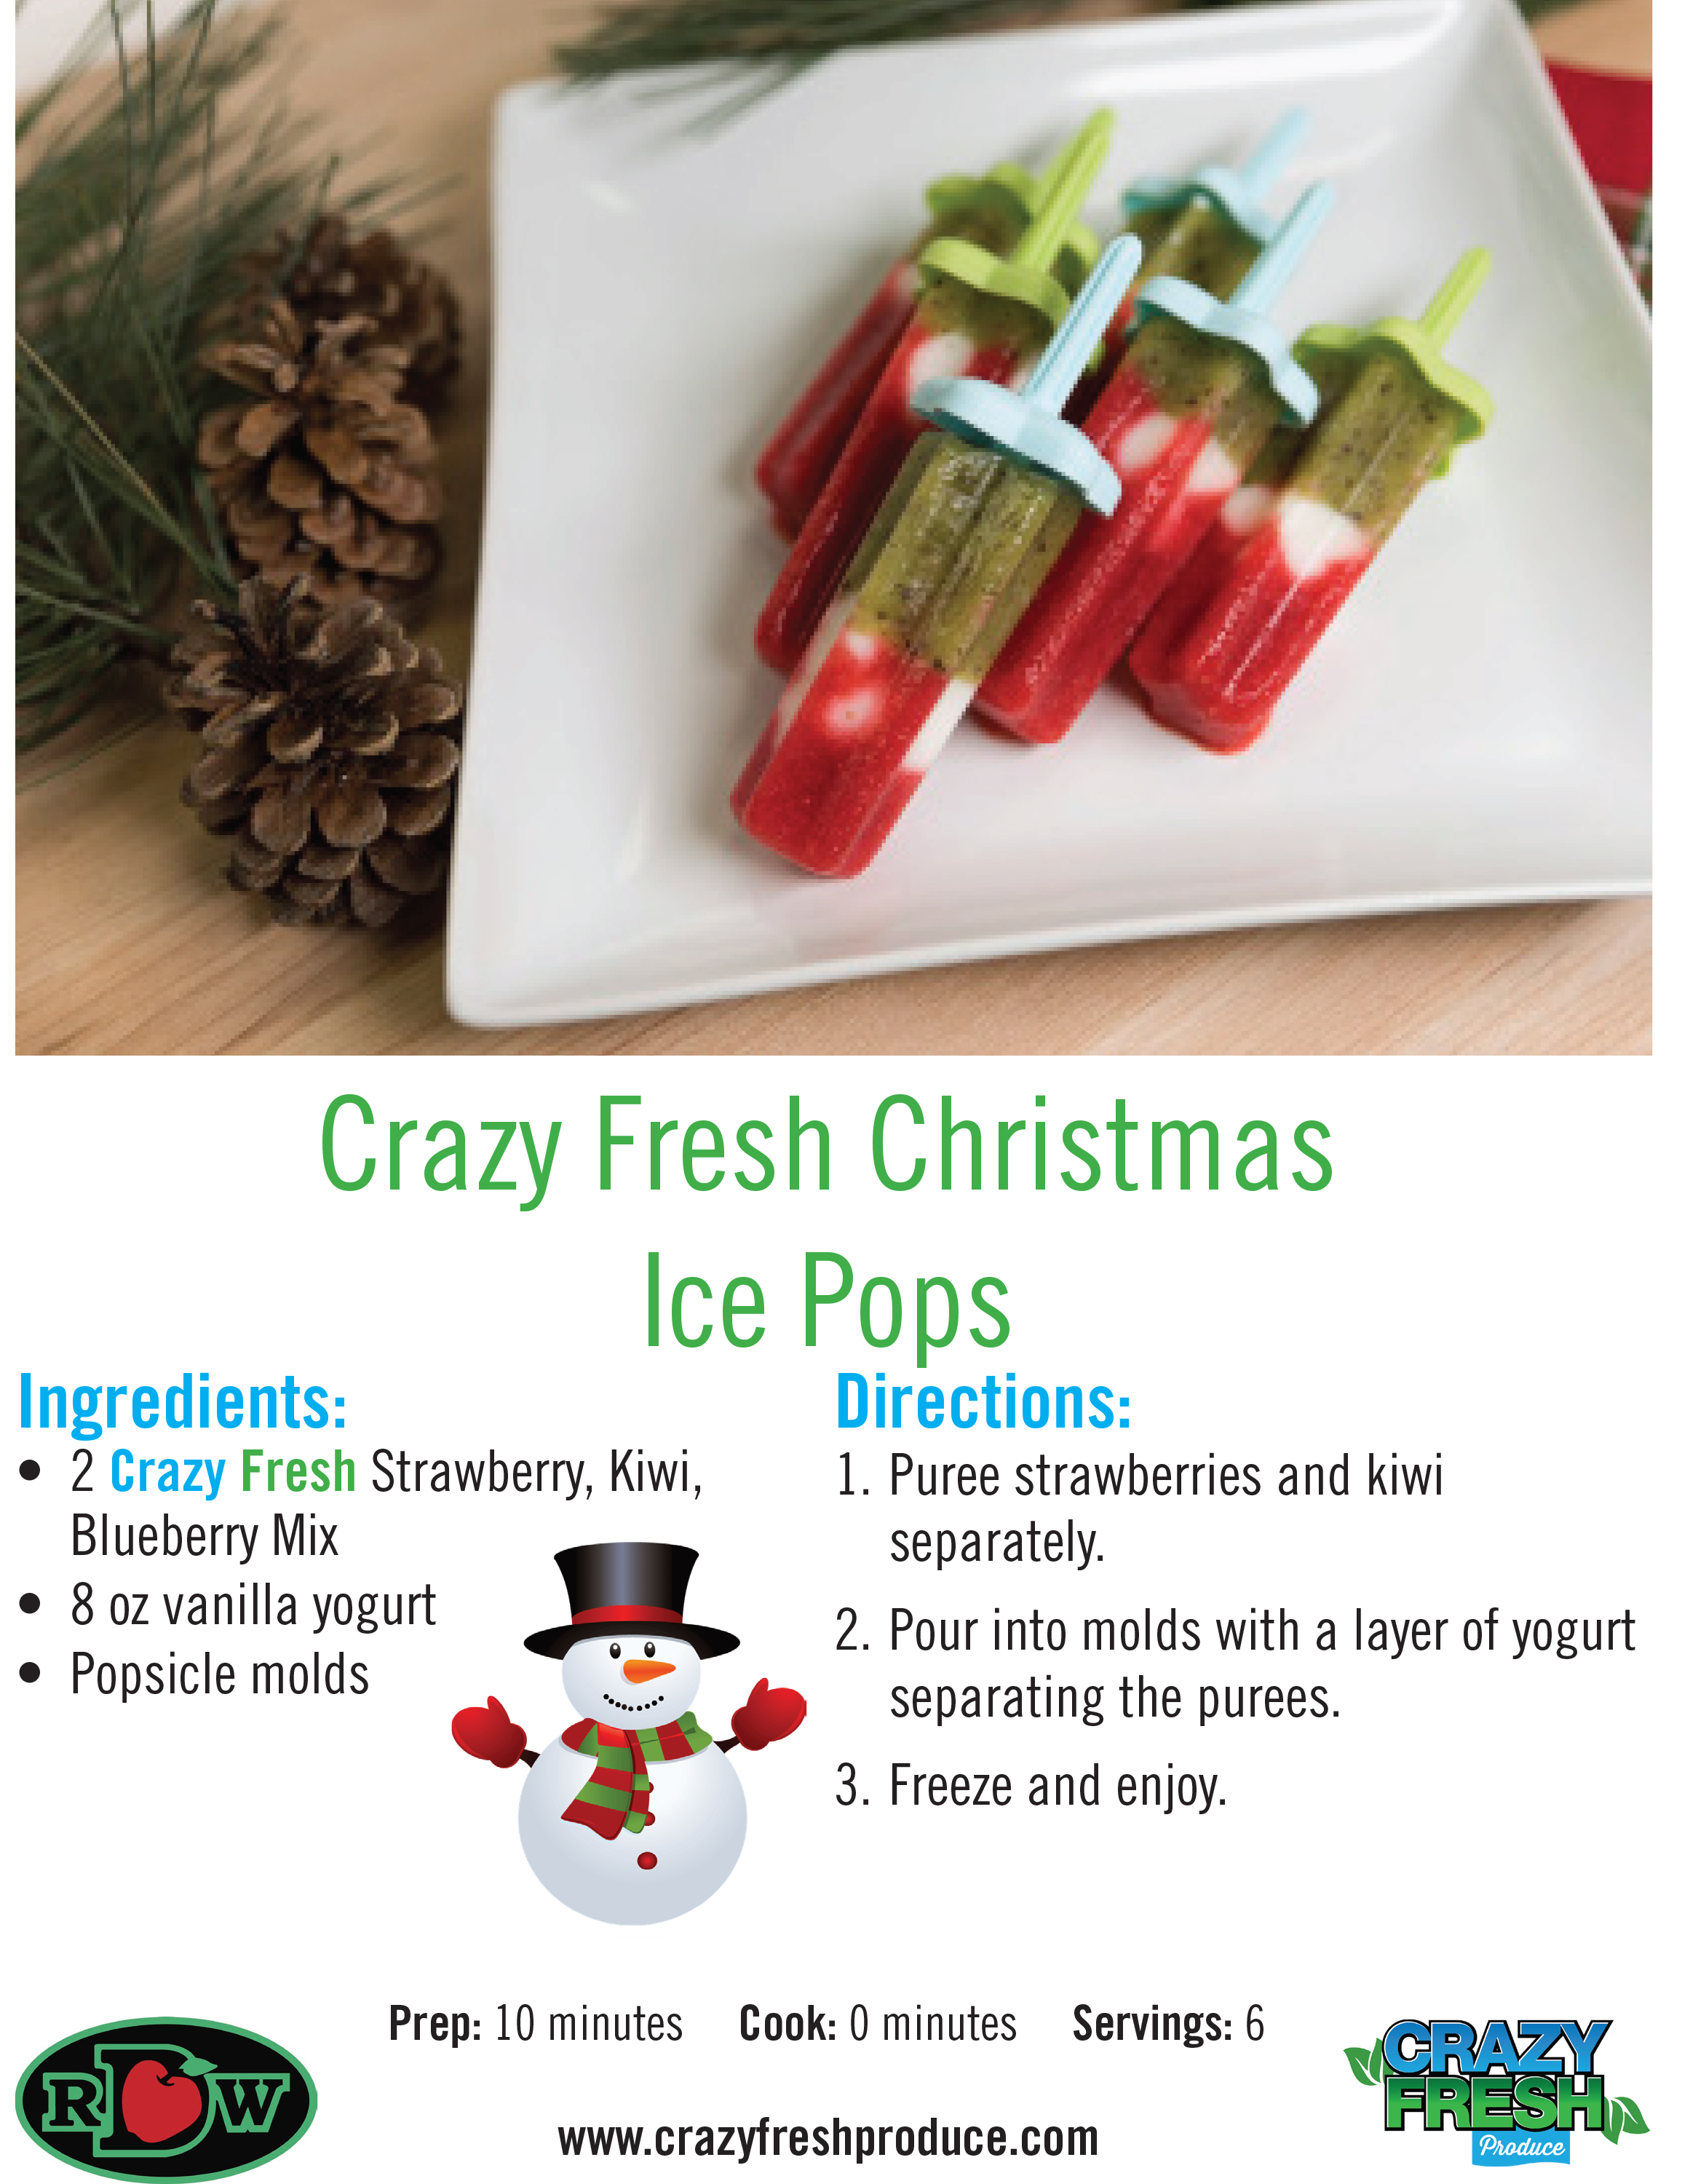 Just because it's cold outside doesn't mean you can't enjoy these yummy, healthy popsicles!